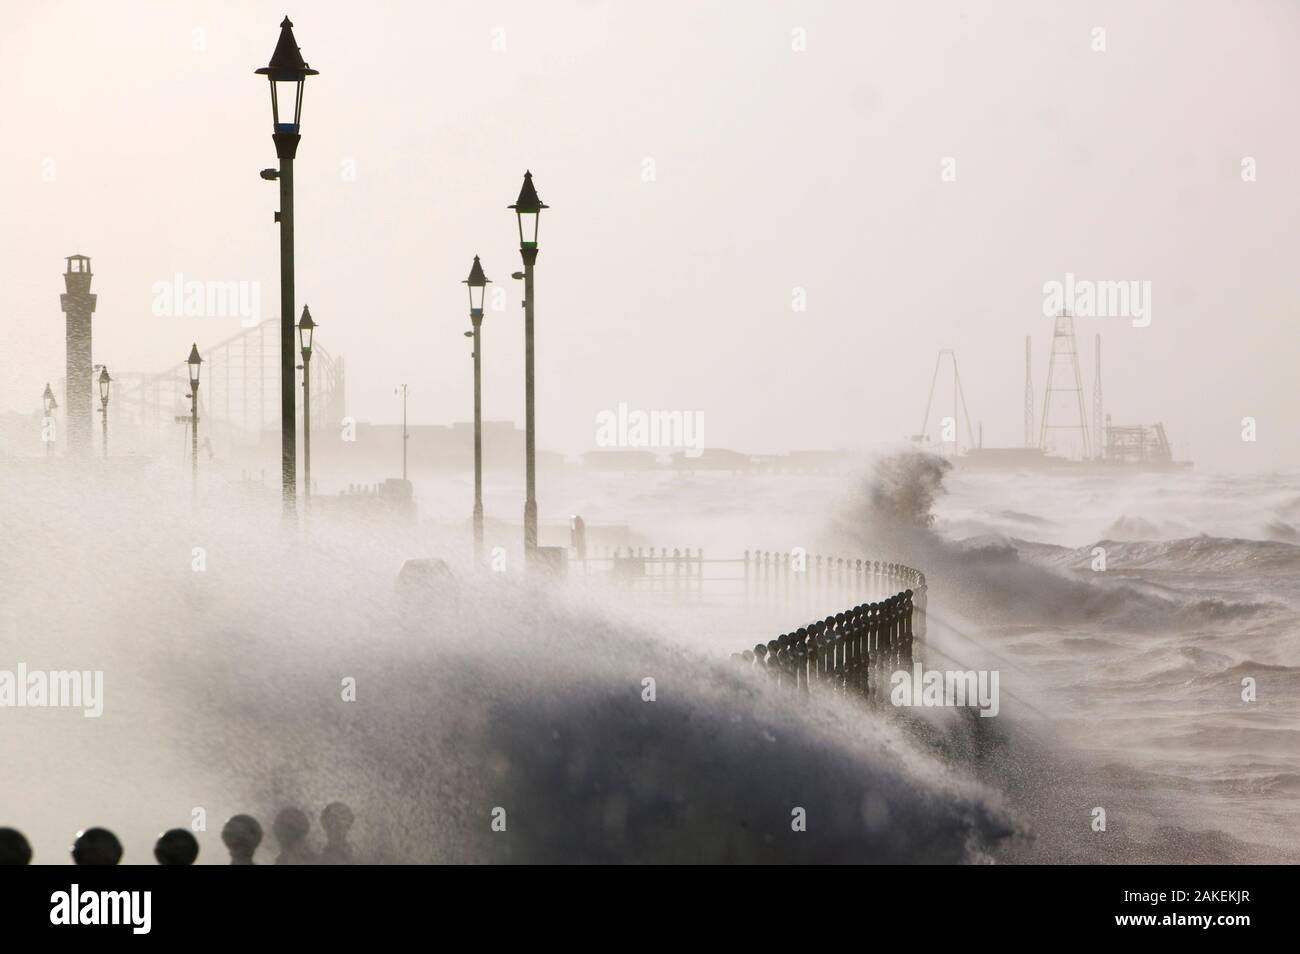 Blackpool battered by storms on  18 January 2007. The storms that day killed 13 people across the UK in hurricane force winds. January 2007 Stock Photo